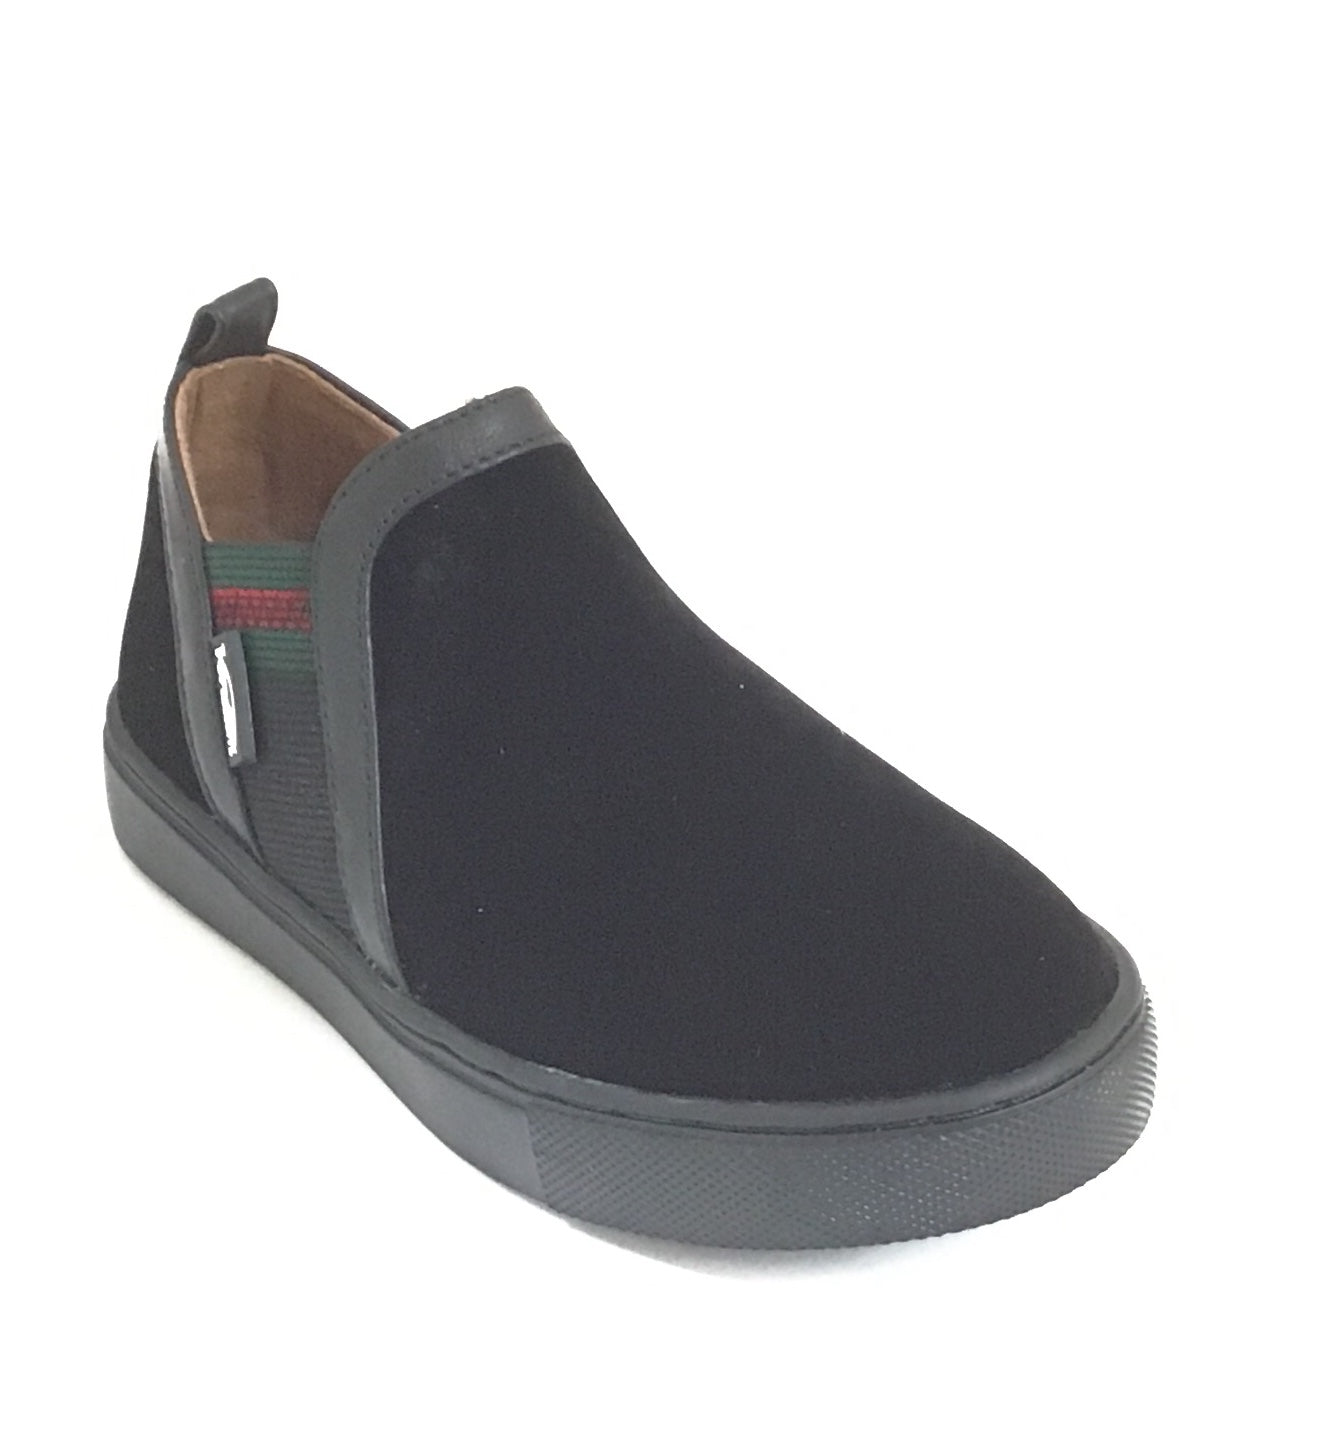 Venettini Black Suede Slip On Shoe